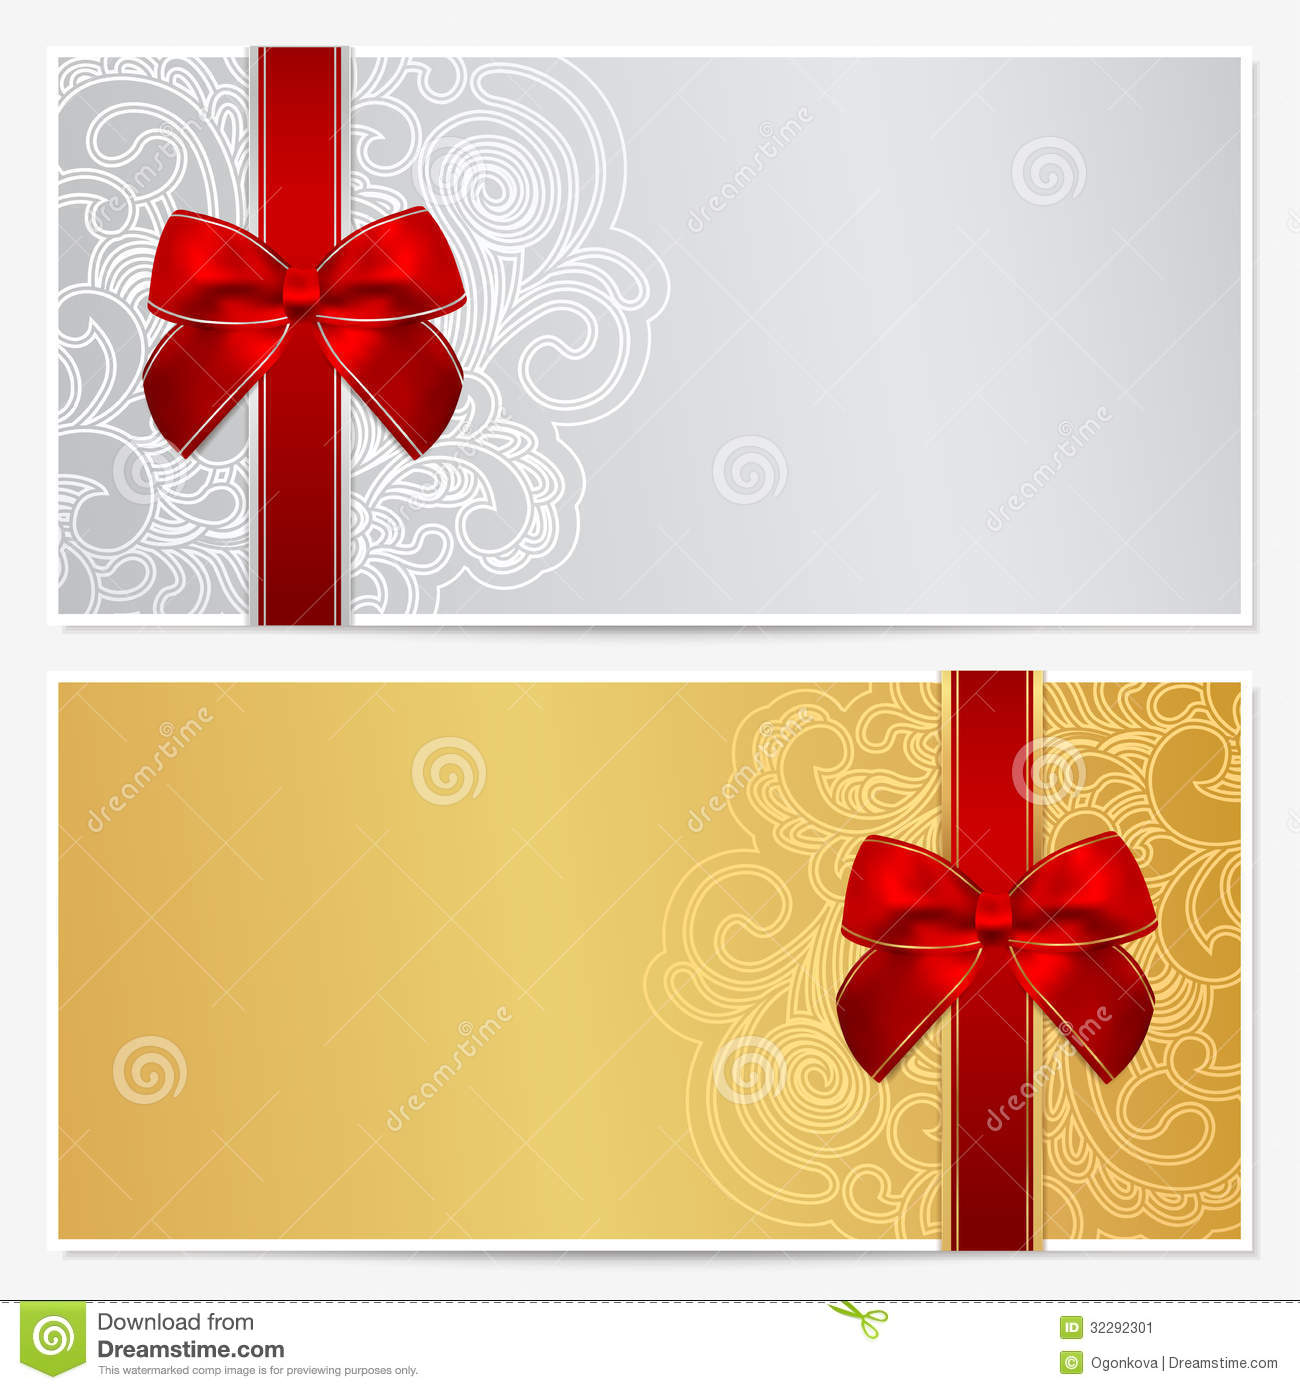 gift certificate for business